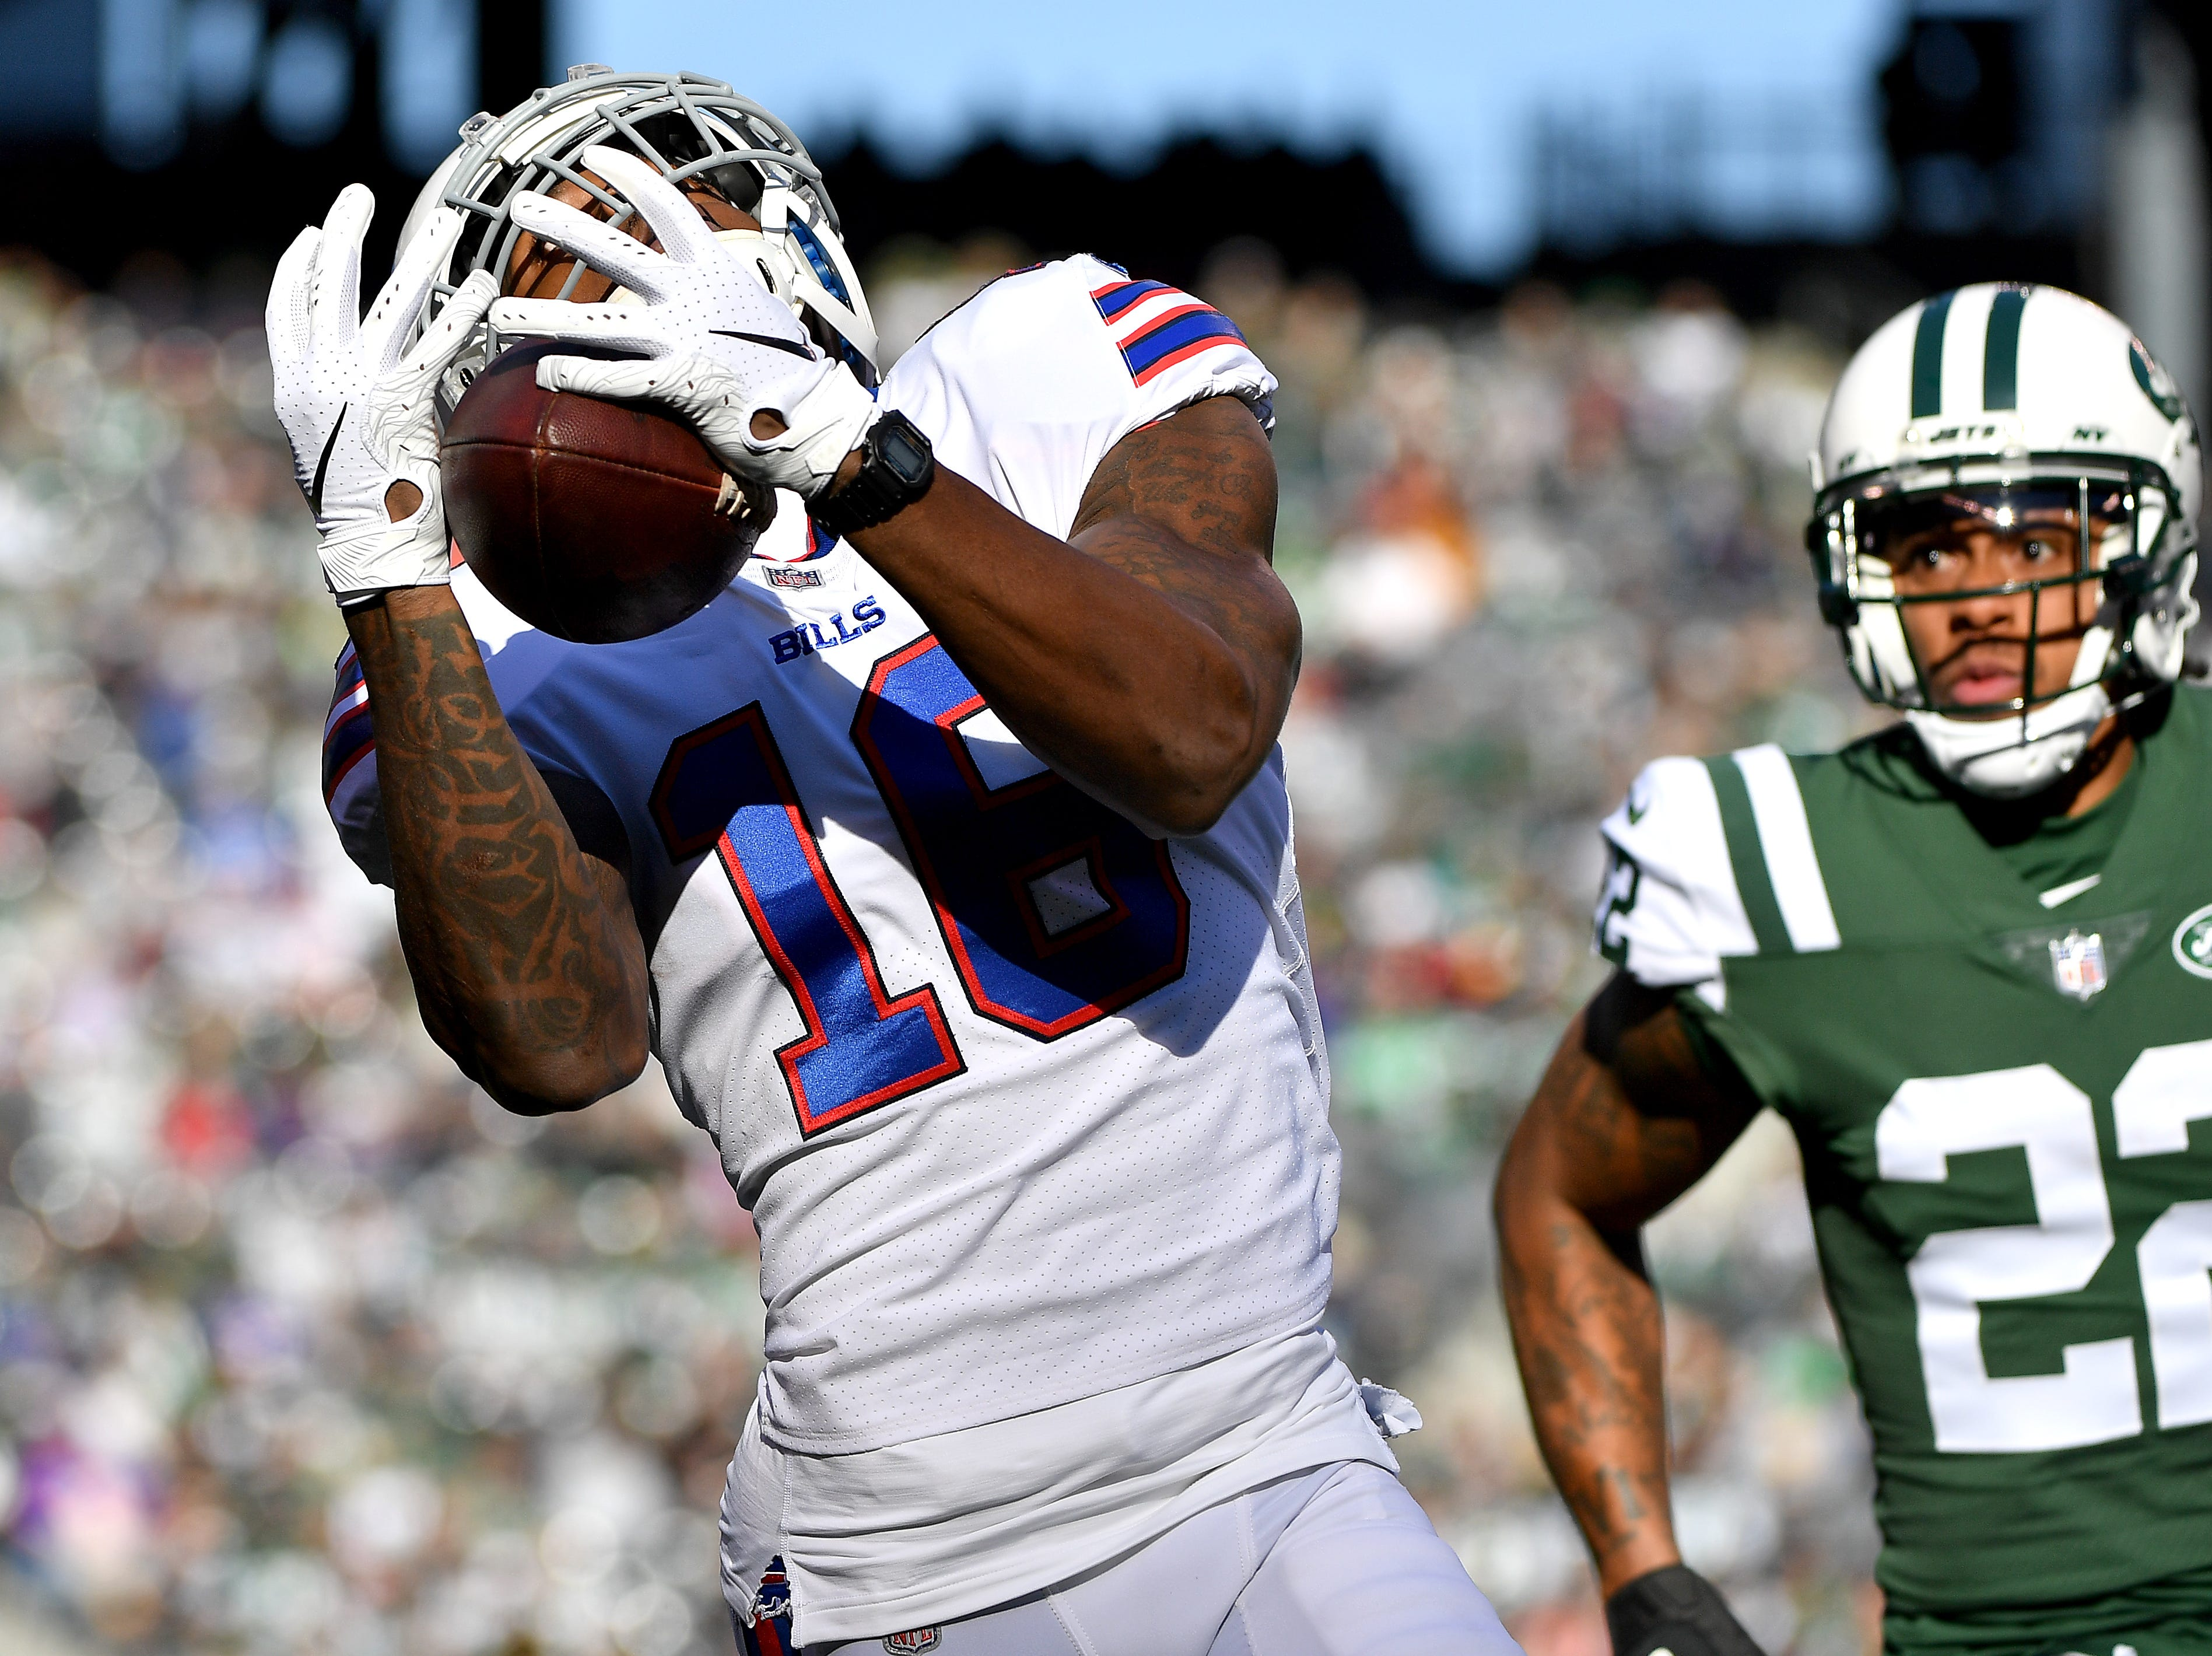 EAST RUTHERFORD, NEW JERSEY - NOVEMBER 11: Robert Foster #16 of the Buffalo Bills makes a first down reception during the first quarter against Trumaine Johnson #22 of the New York Jets at MetLife Stadium on November 11, 2018 in East Rutherford, New Jersey. (Photo by Mark Brown/Getty Images)